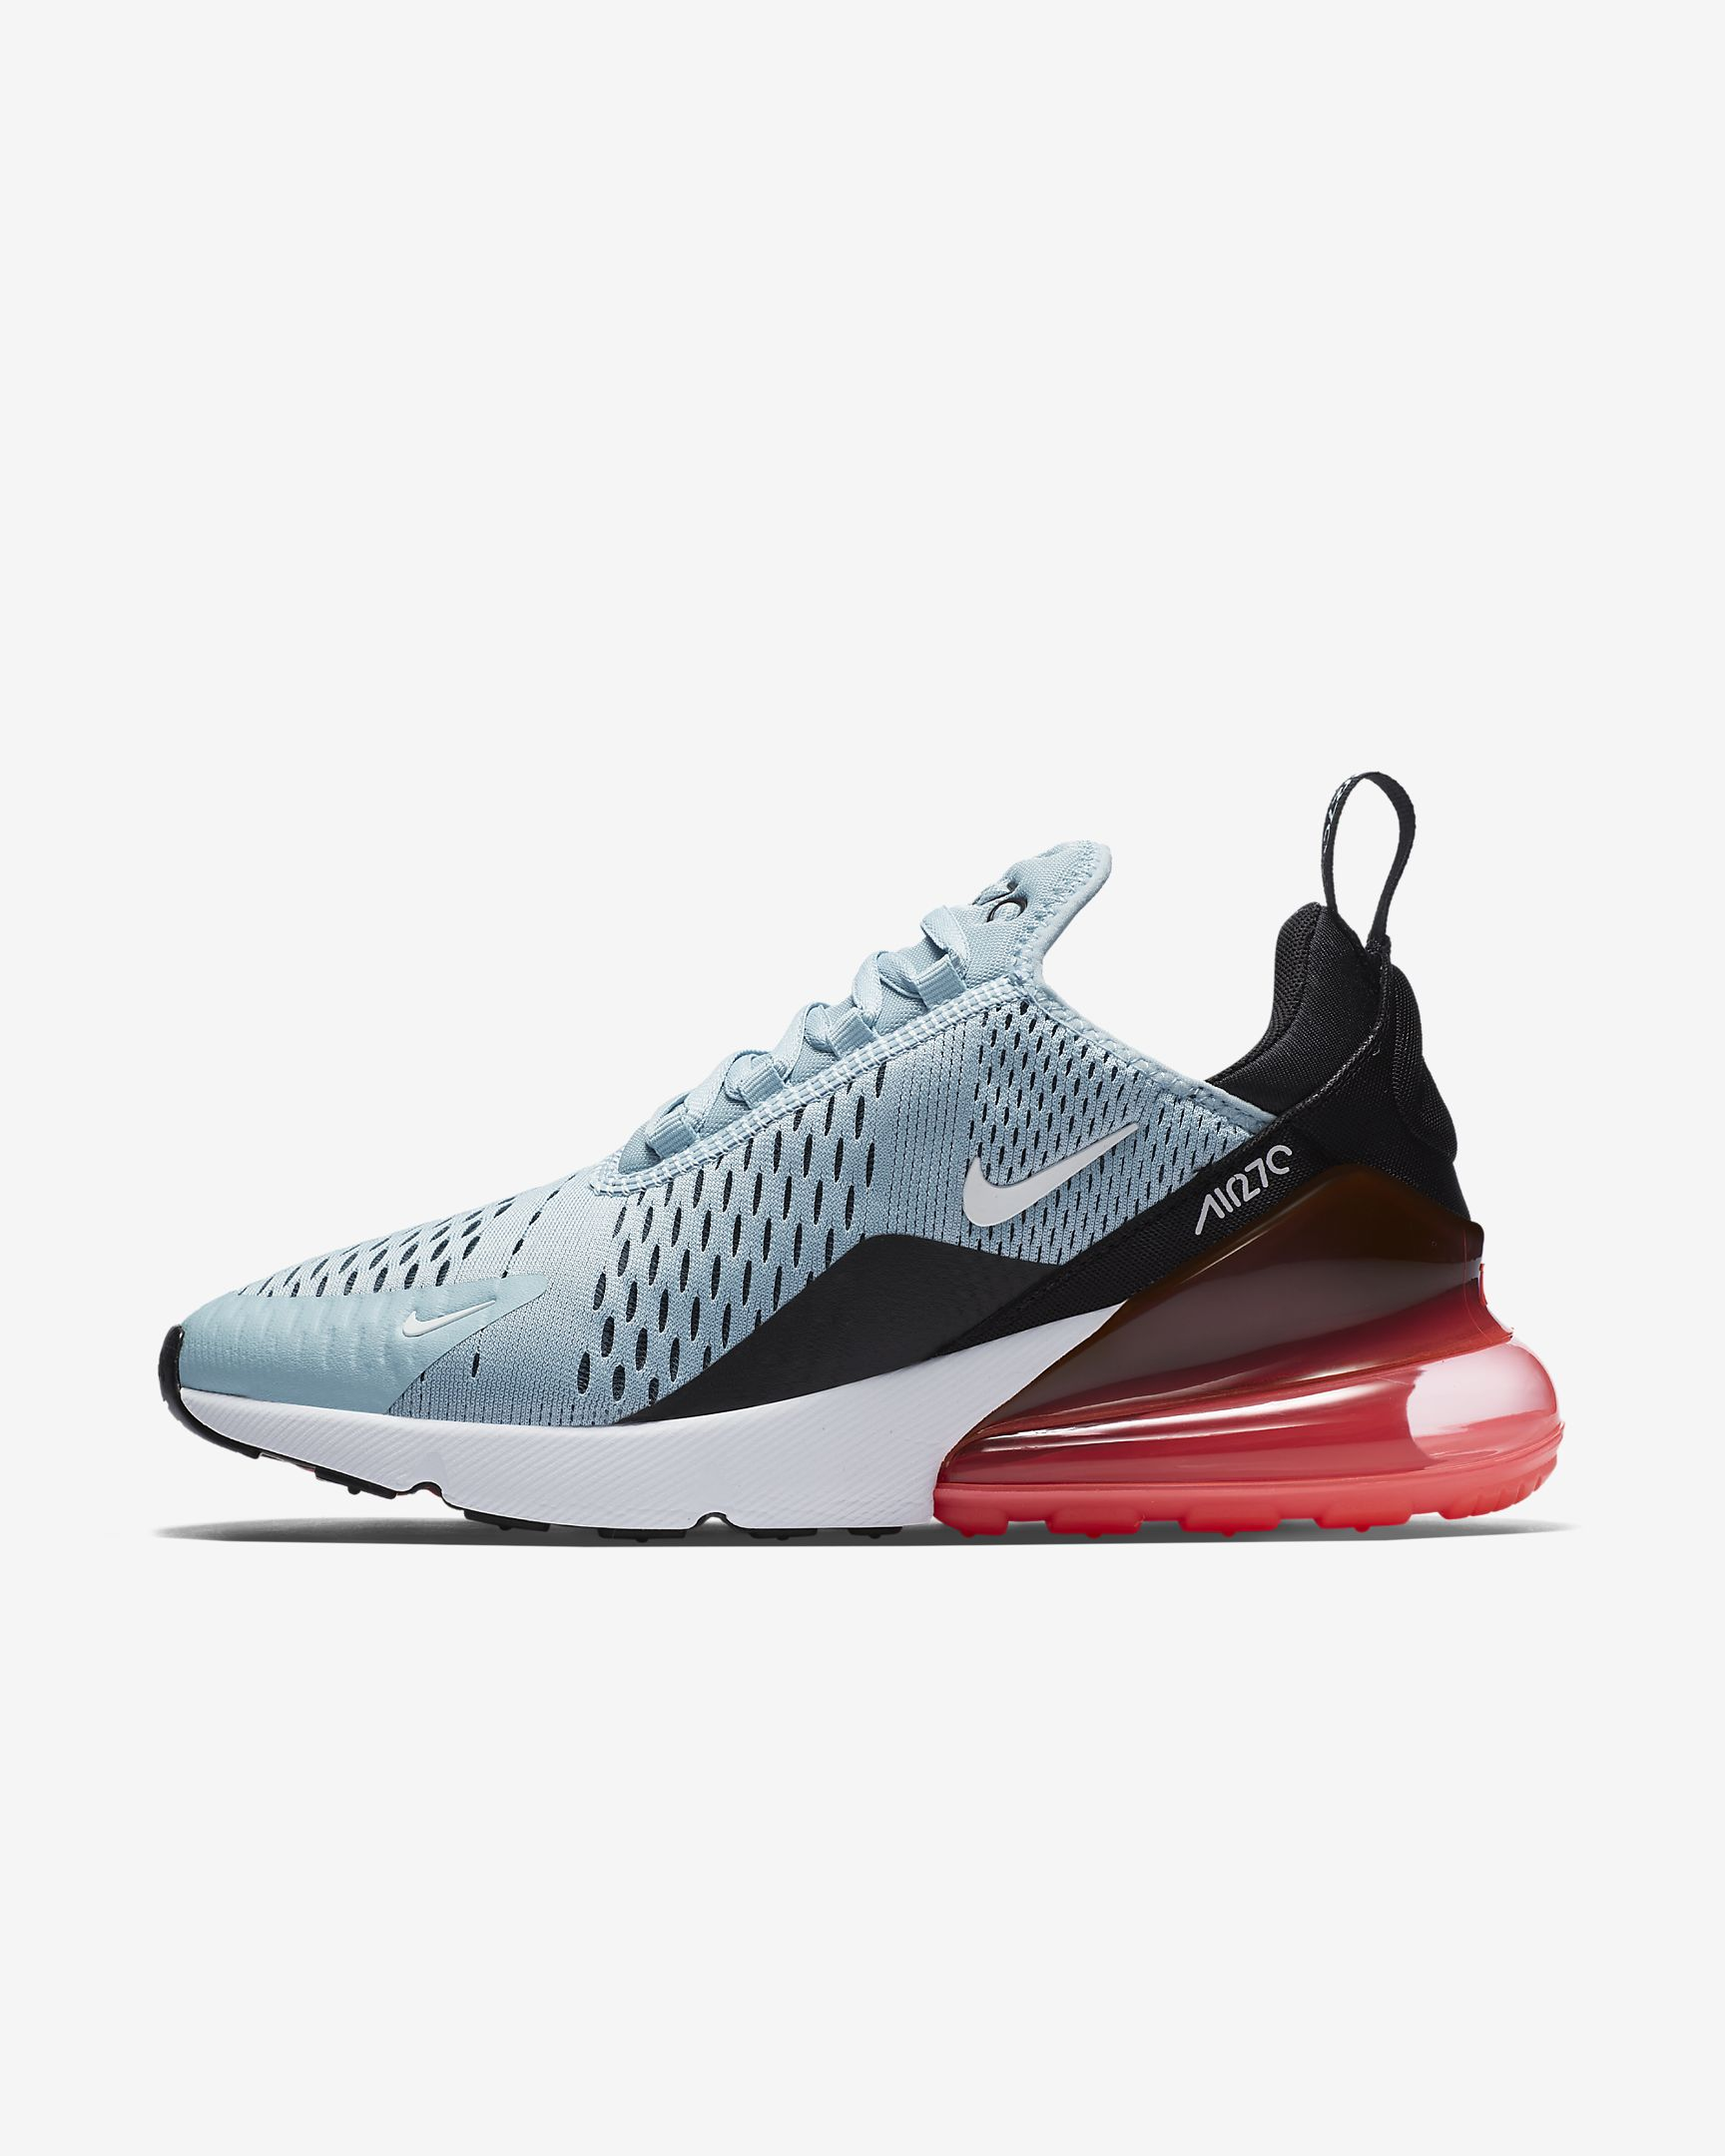 Nike Air Max 270 Women's Shoe Only $150